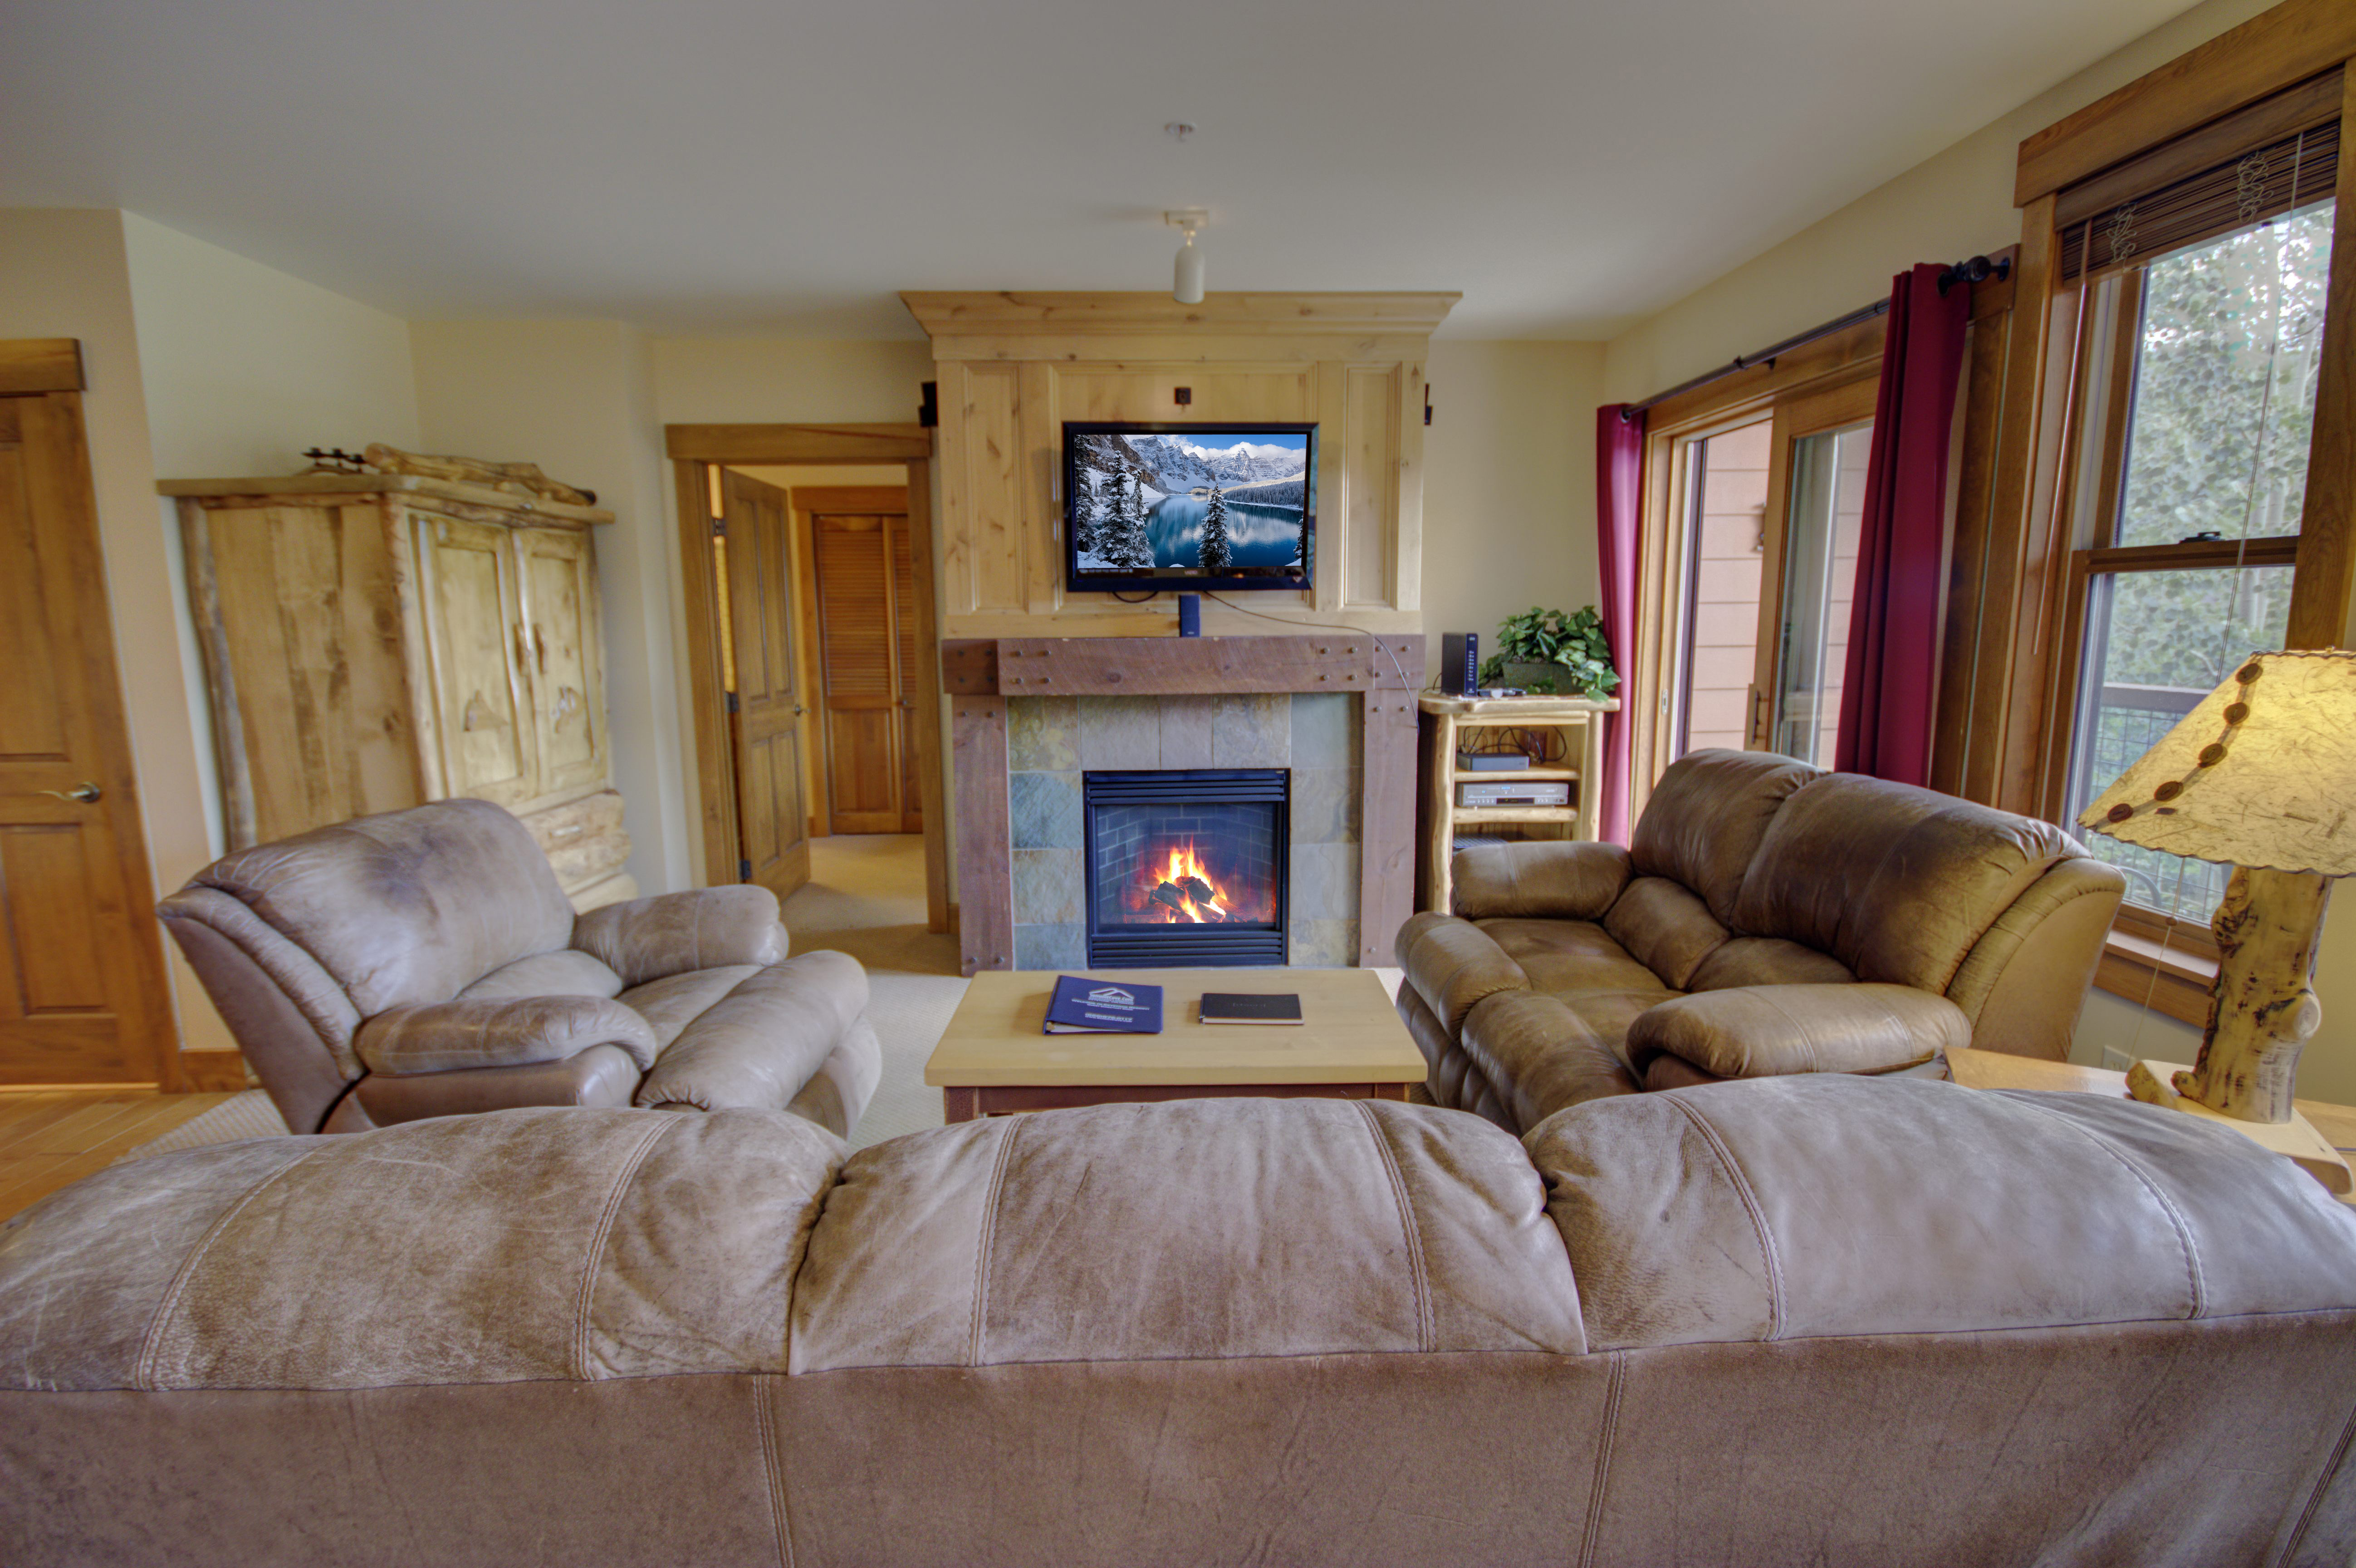 The living room has a TV and a fireplace for cold days